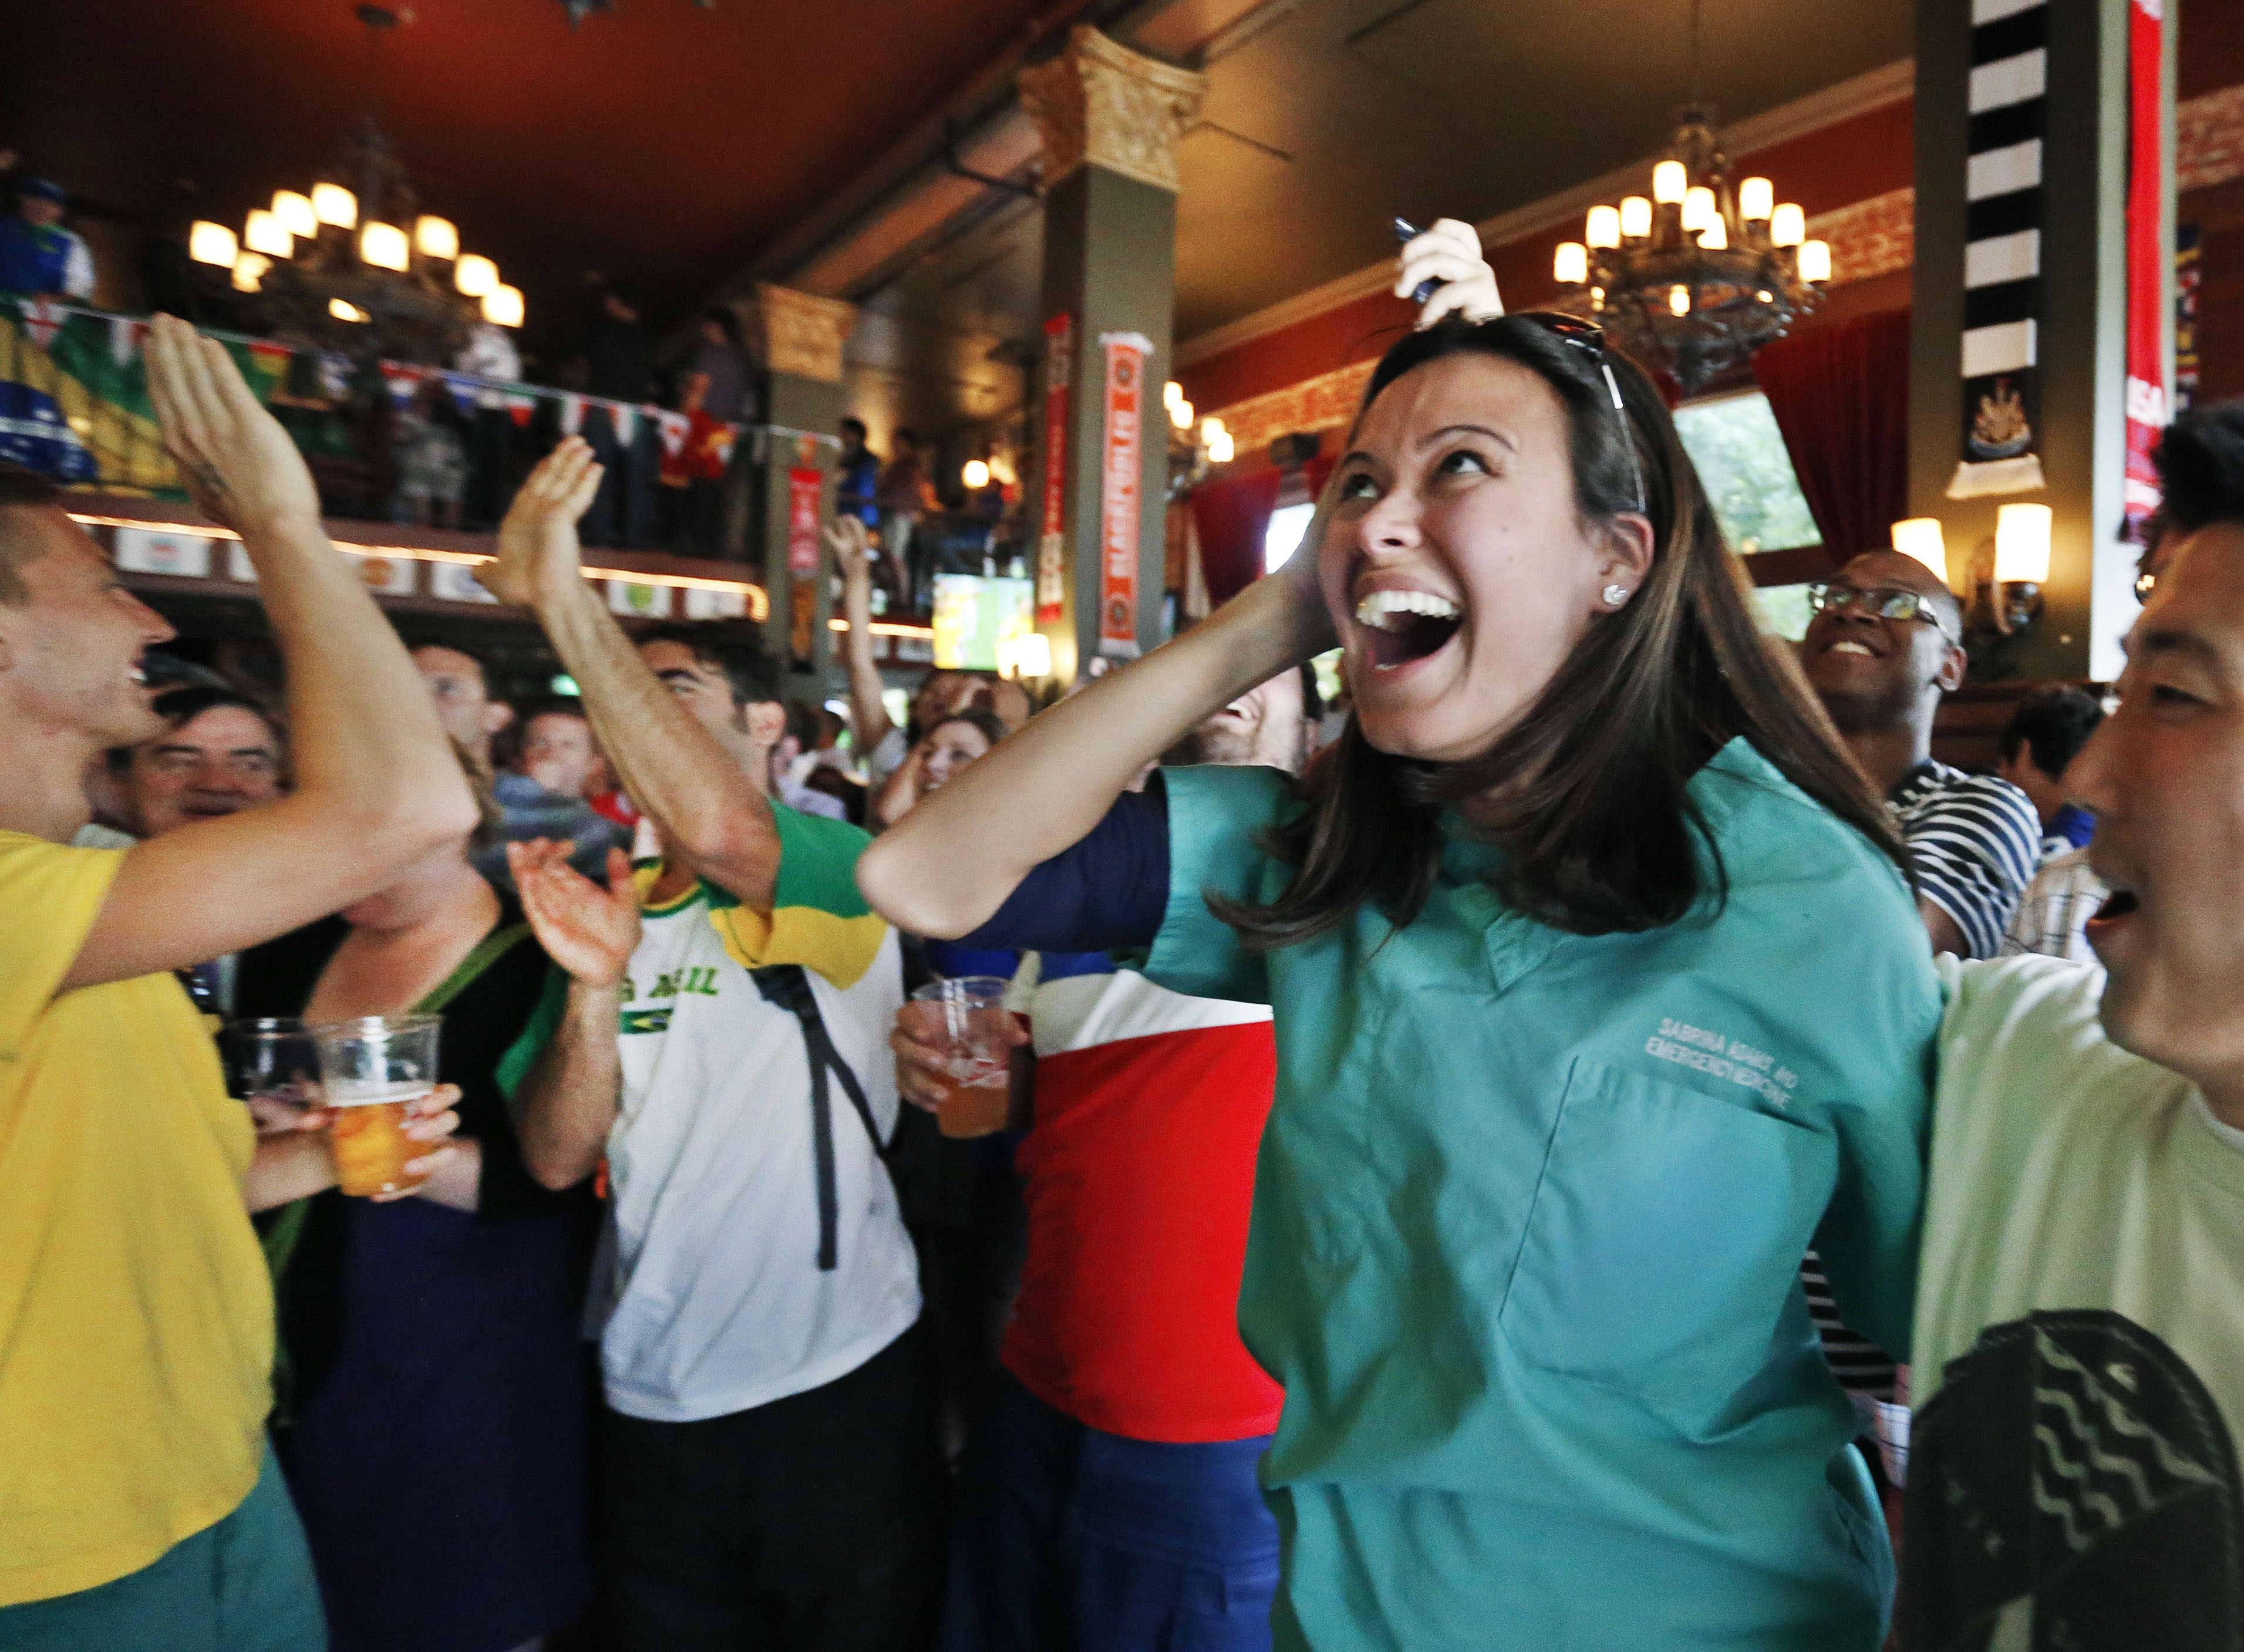 Sabrina Adams, center, and Howard Kim, right, celebrate as Brazil scores a goal against Croatia as they watch the World Cup opening game on televisions inside The Three Lions World Football Pub in Denver.